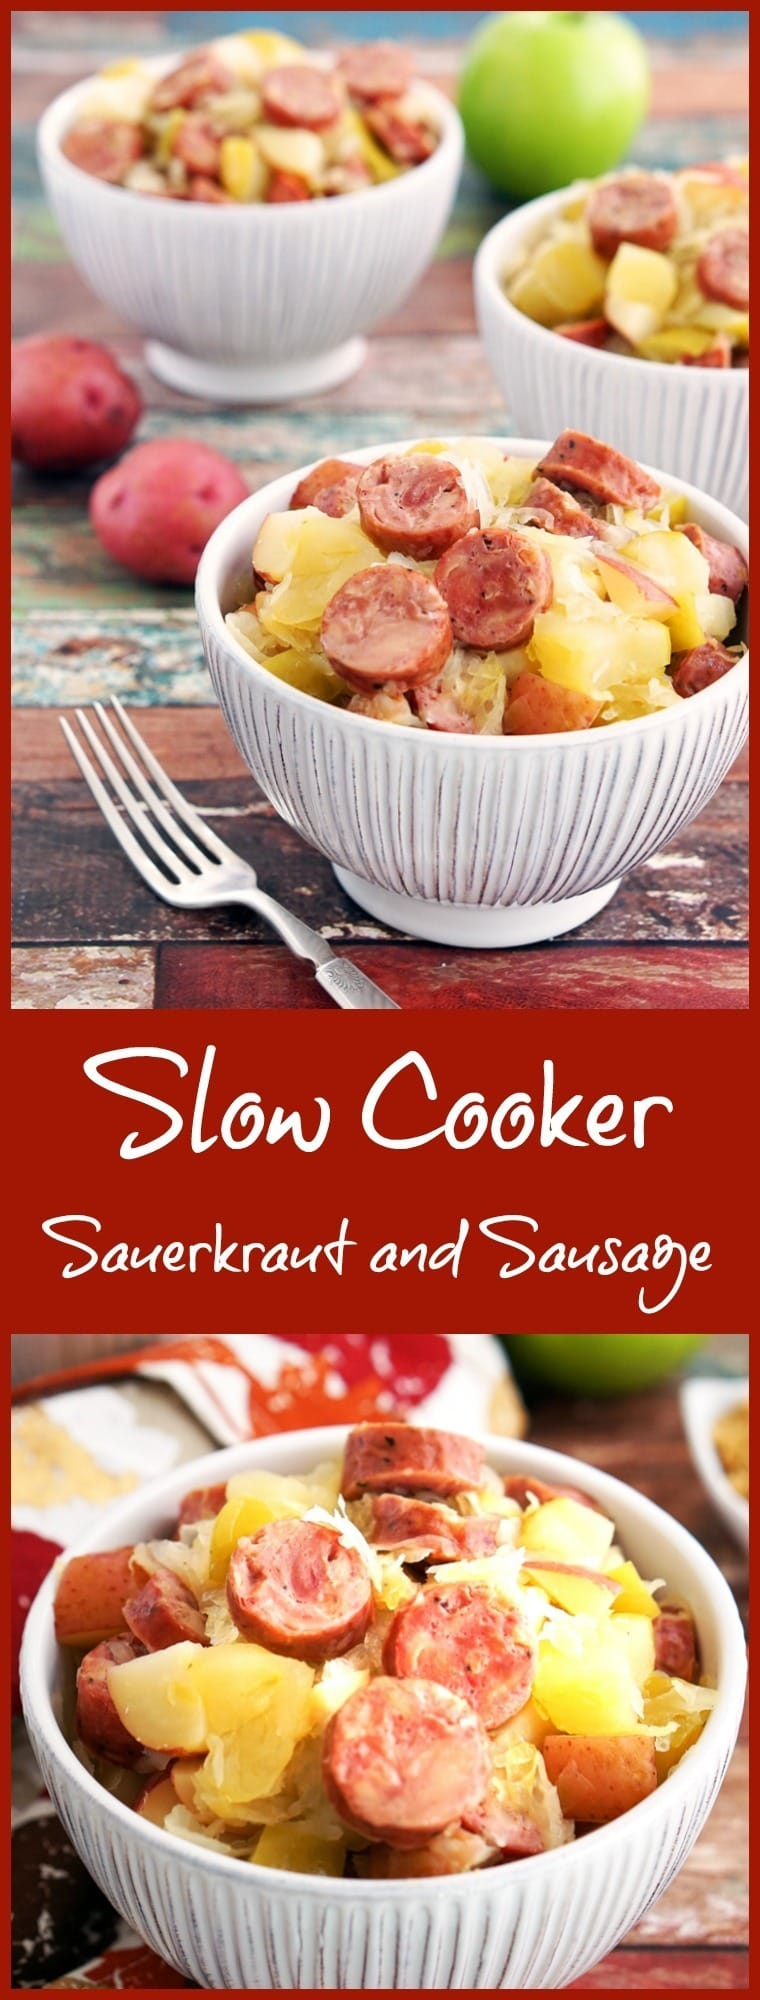 Are you looking for a gluten free Crock-Pot recipe? This Slow Cooker Sauerkraut and Sausage with Apples and Potatoes takes only 15 minutes to prepare! Makes a great party or potluck recipe, too.